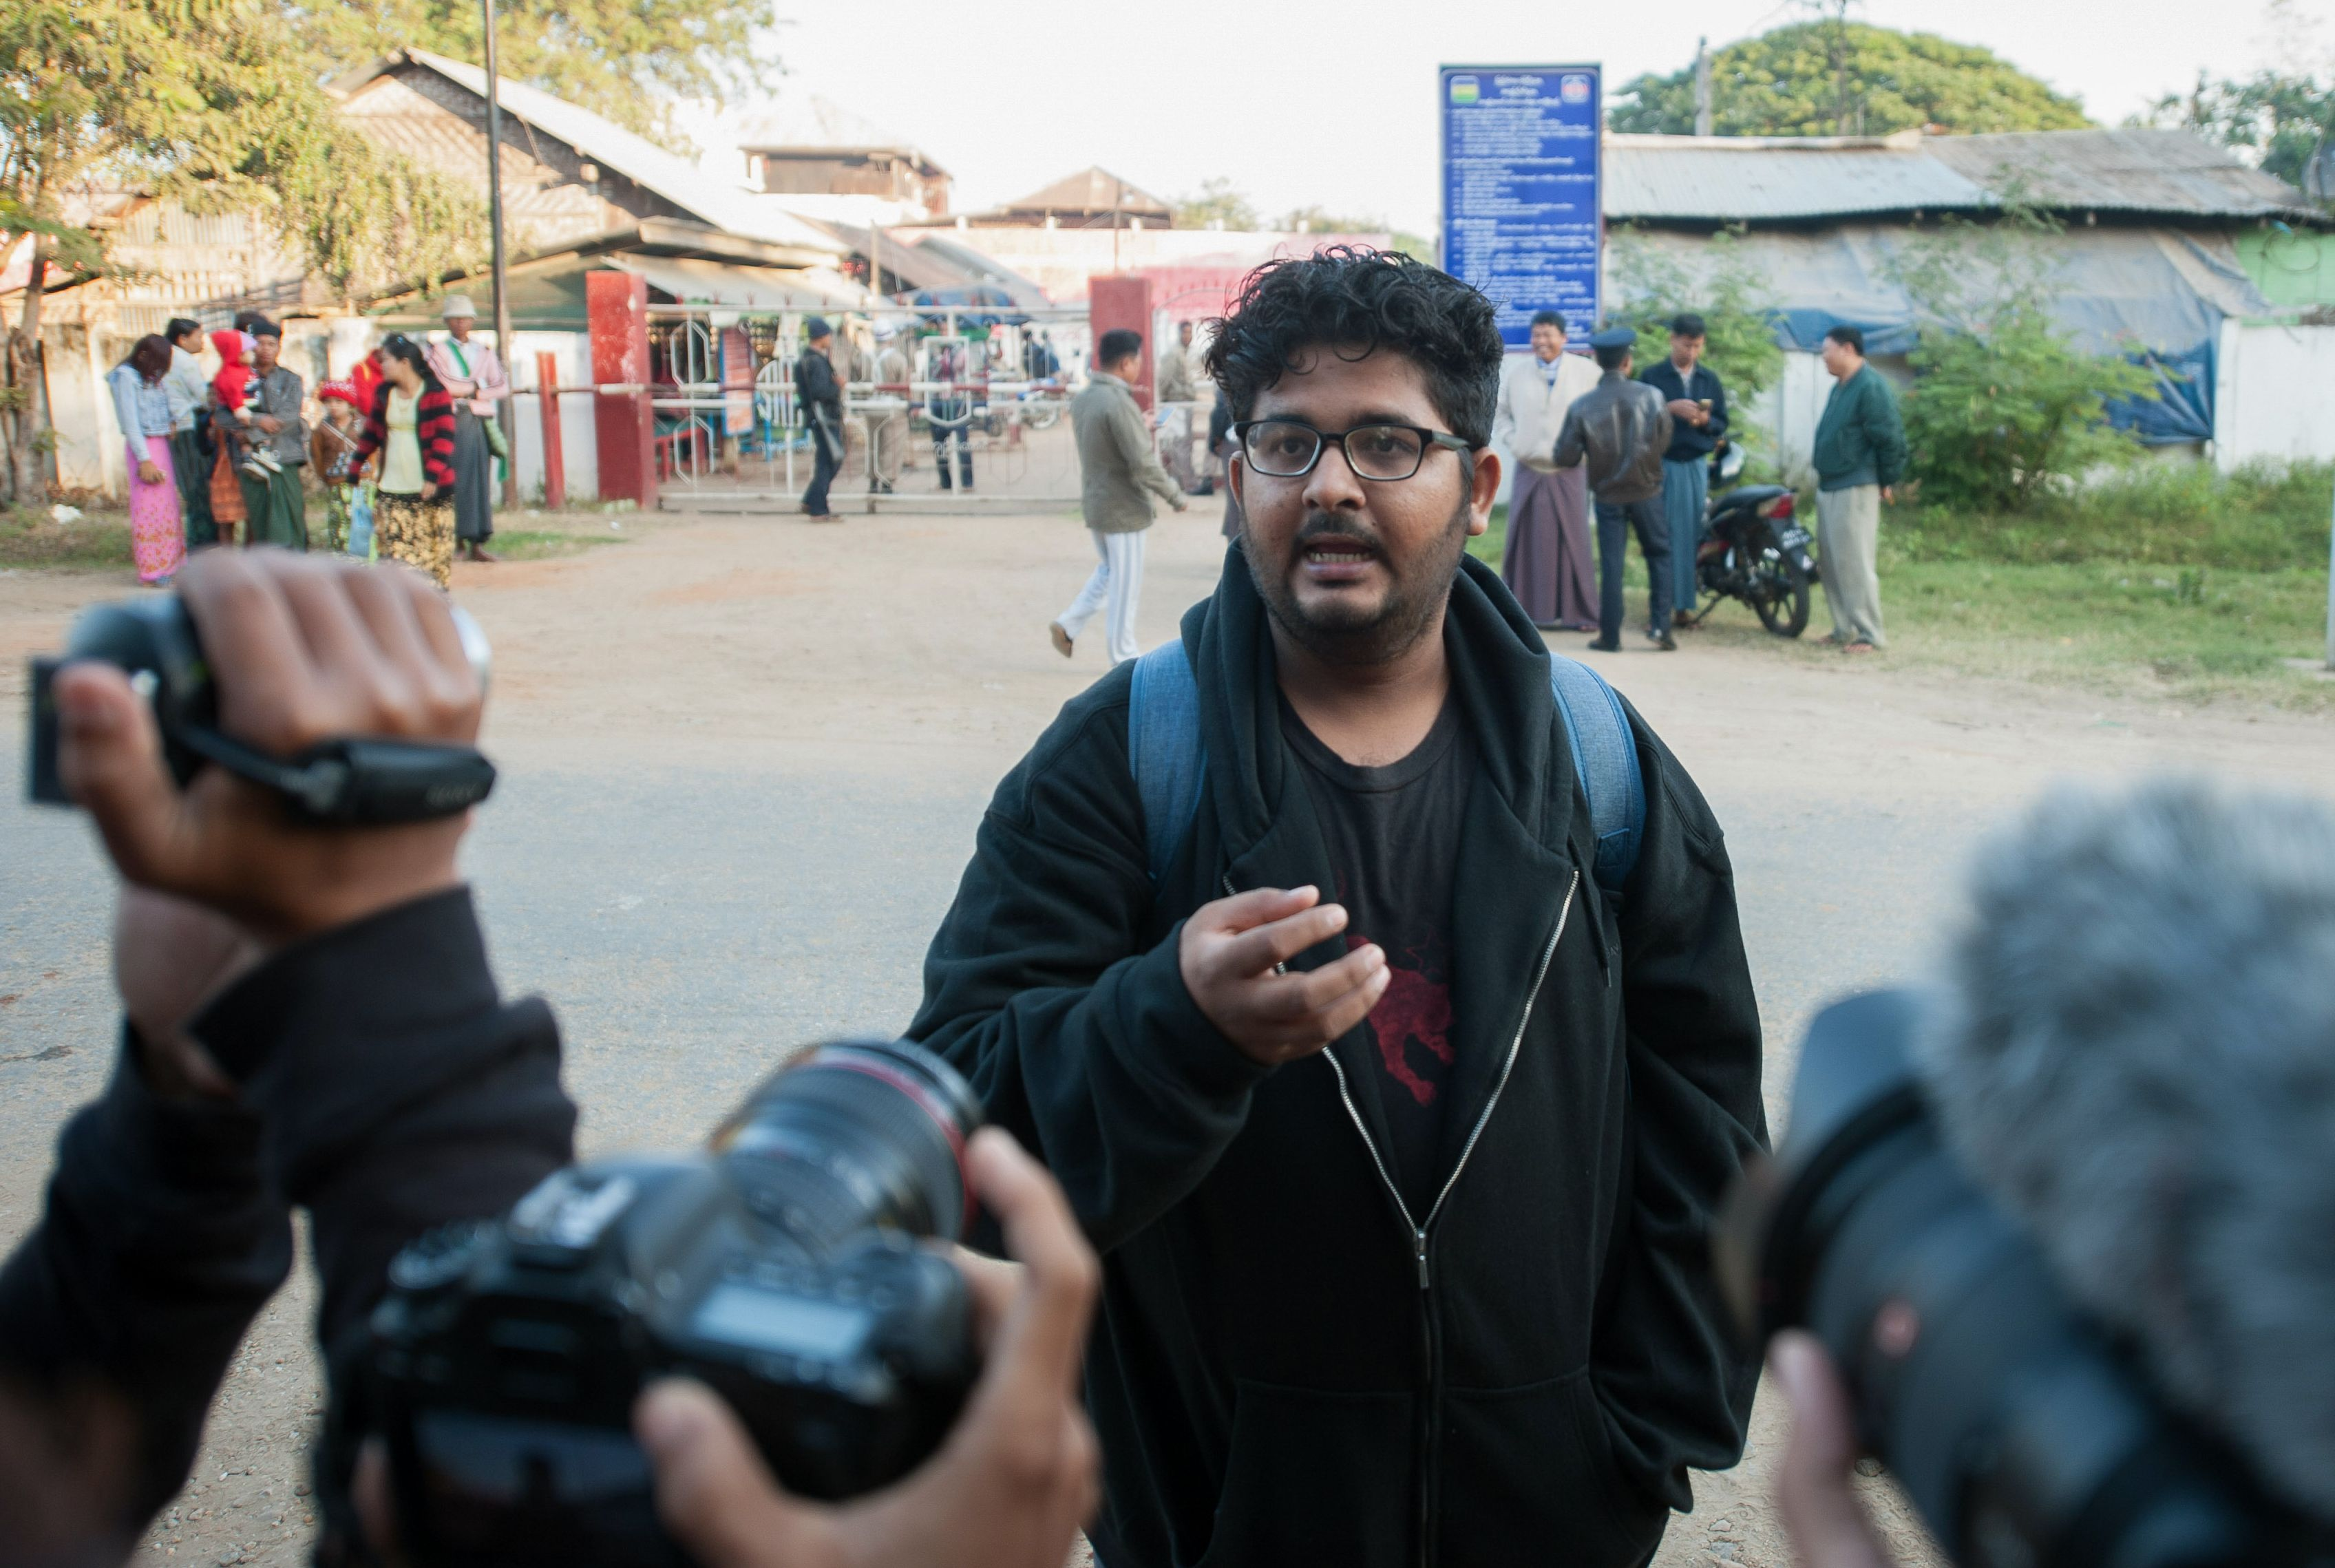 Myanmar journalist Aung Naing Soe speaks to the media after being release from Yamethin prison near Naypyidaw on Dec. 29, 2017.